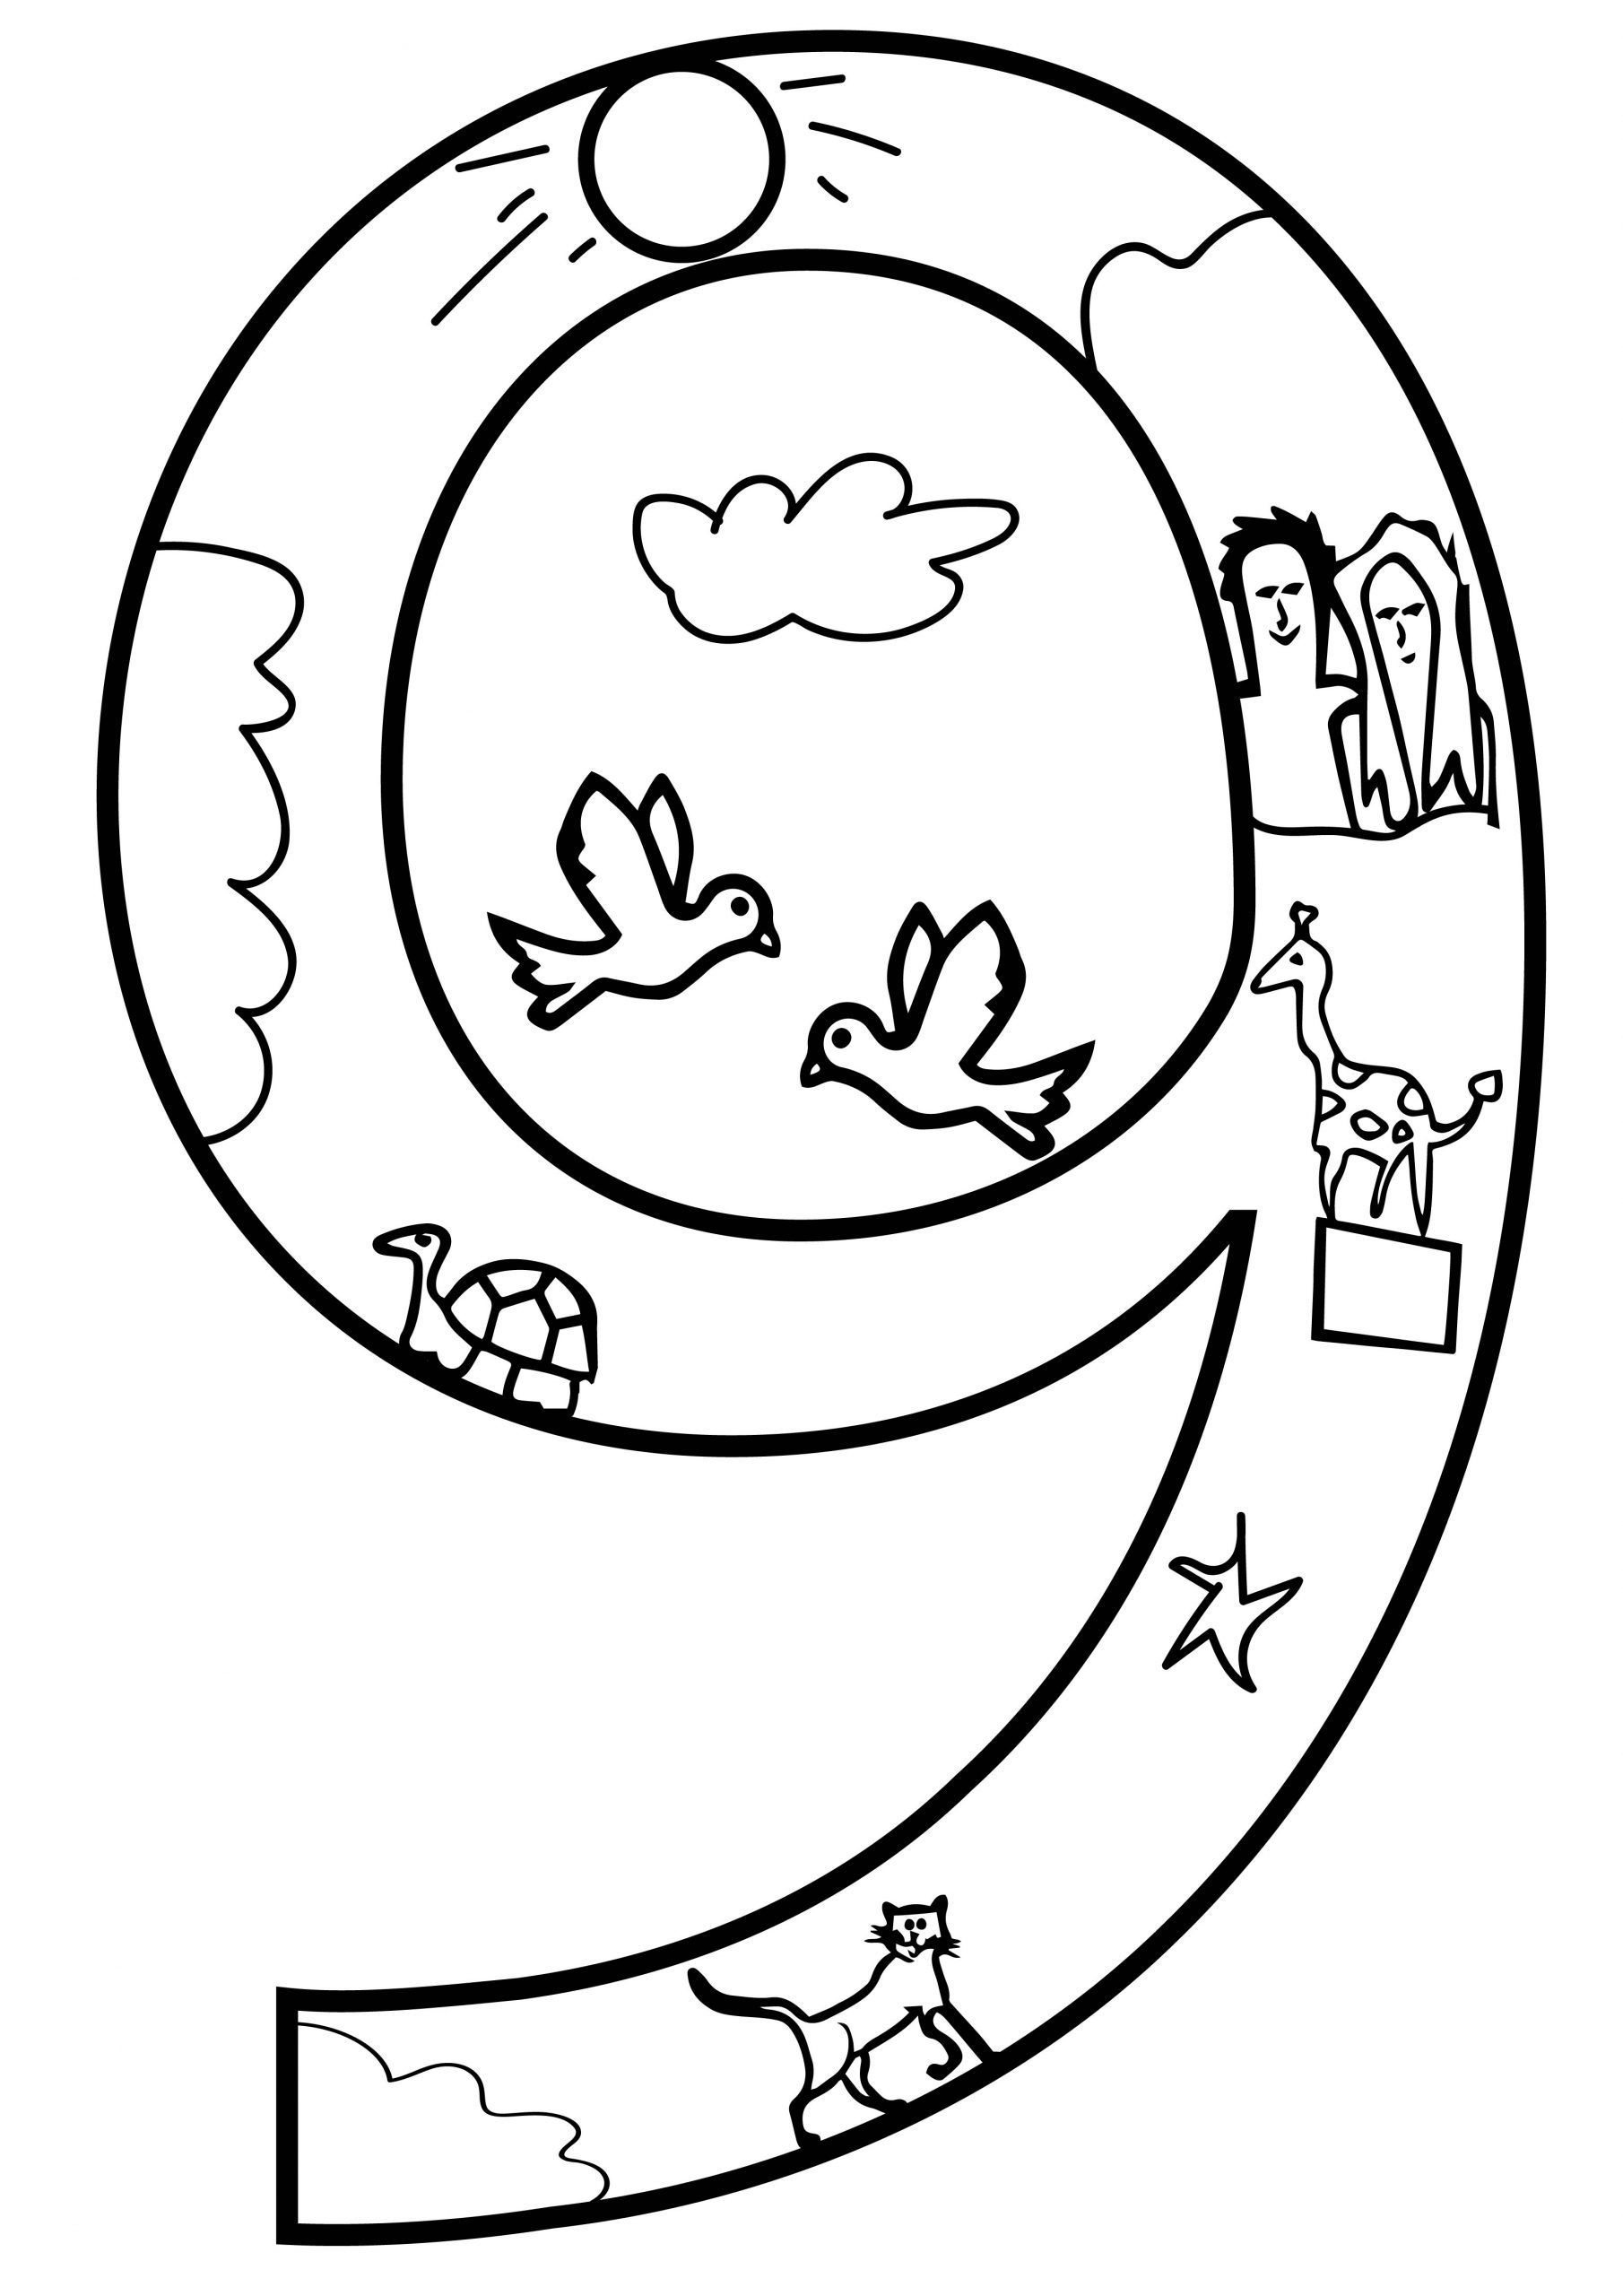 Day Number Nine 9 Coloring Page 01